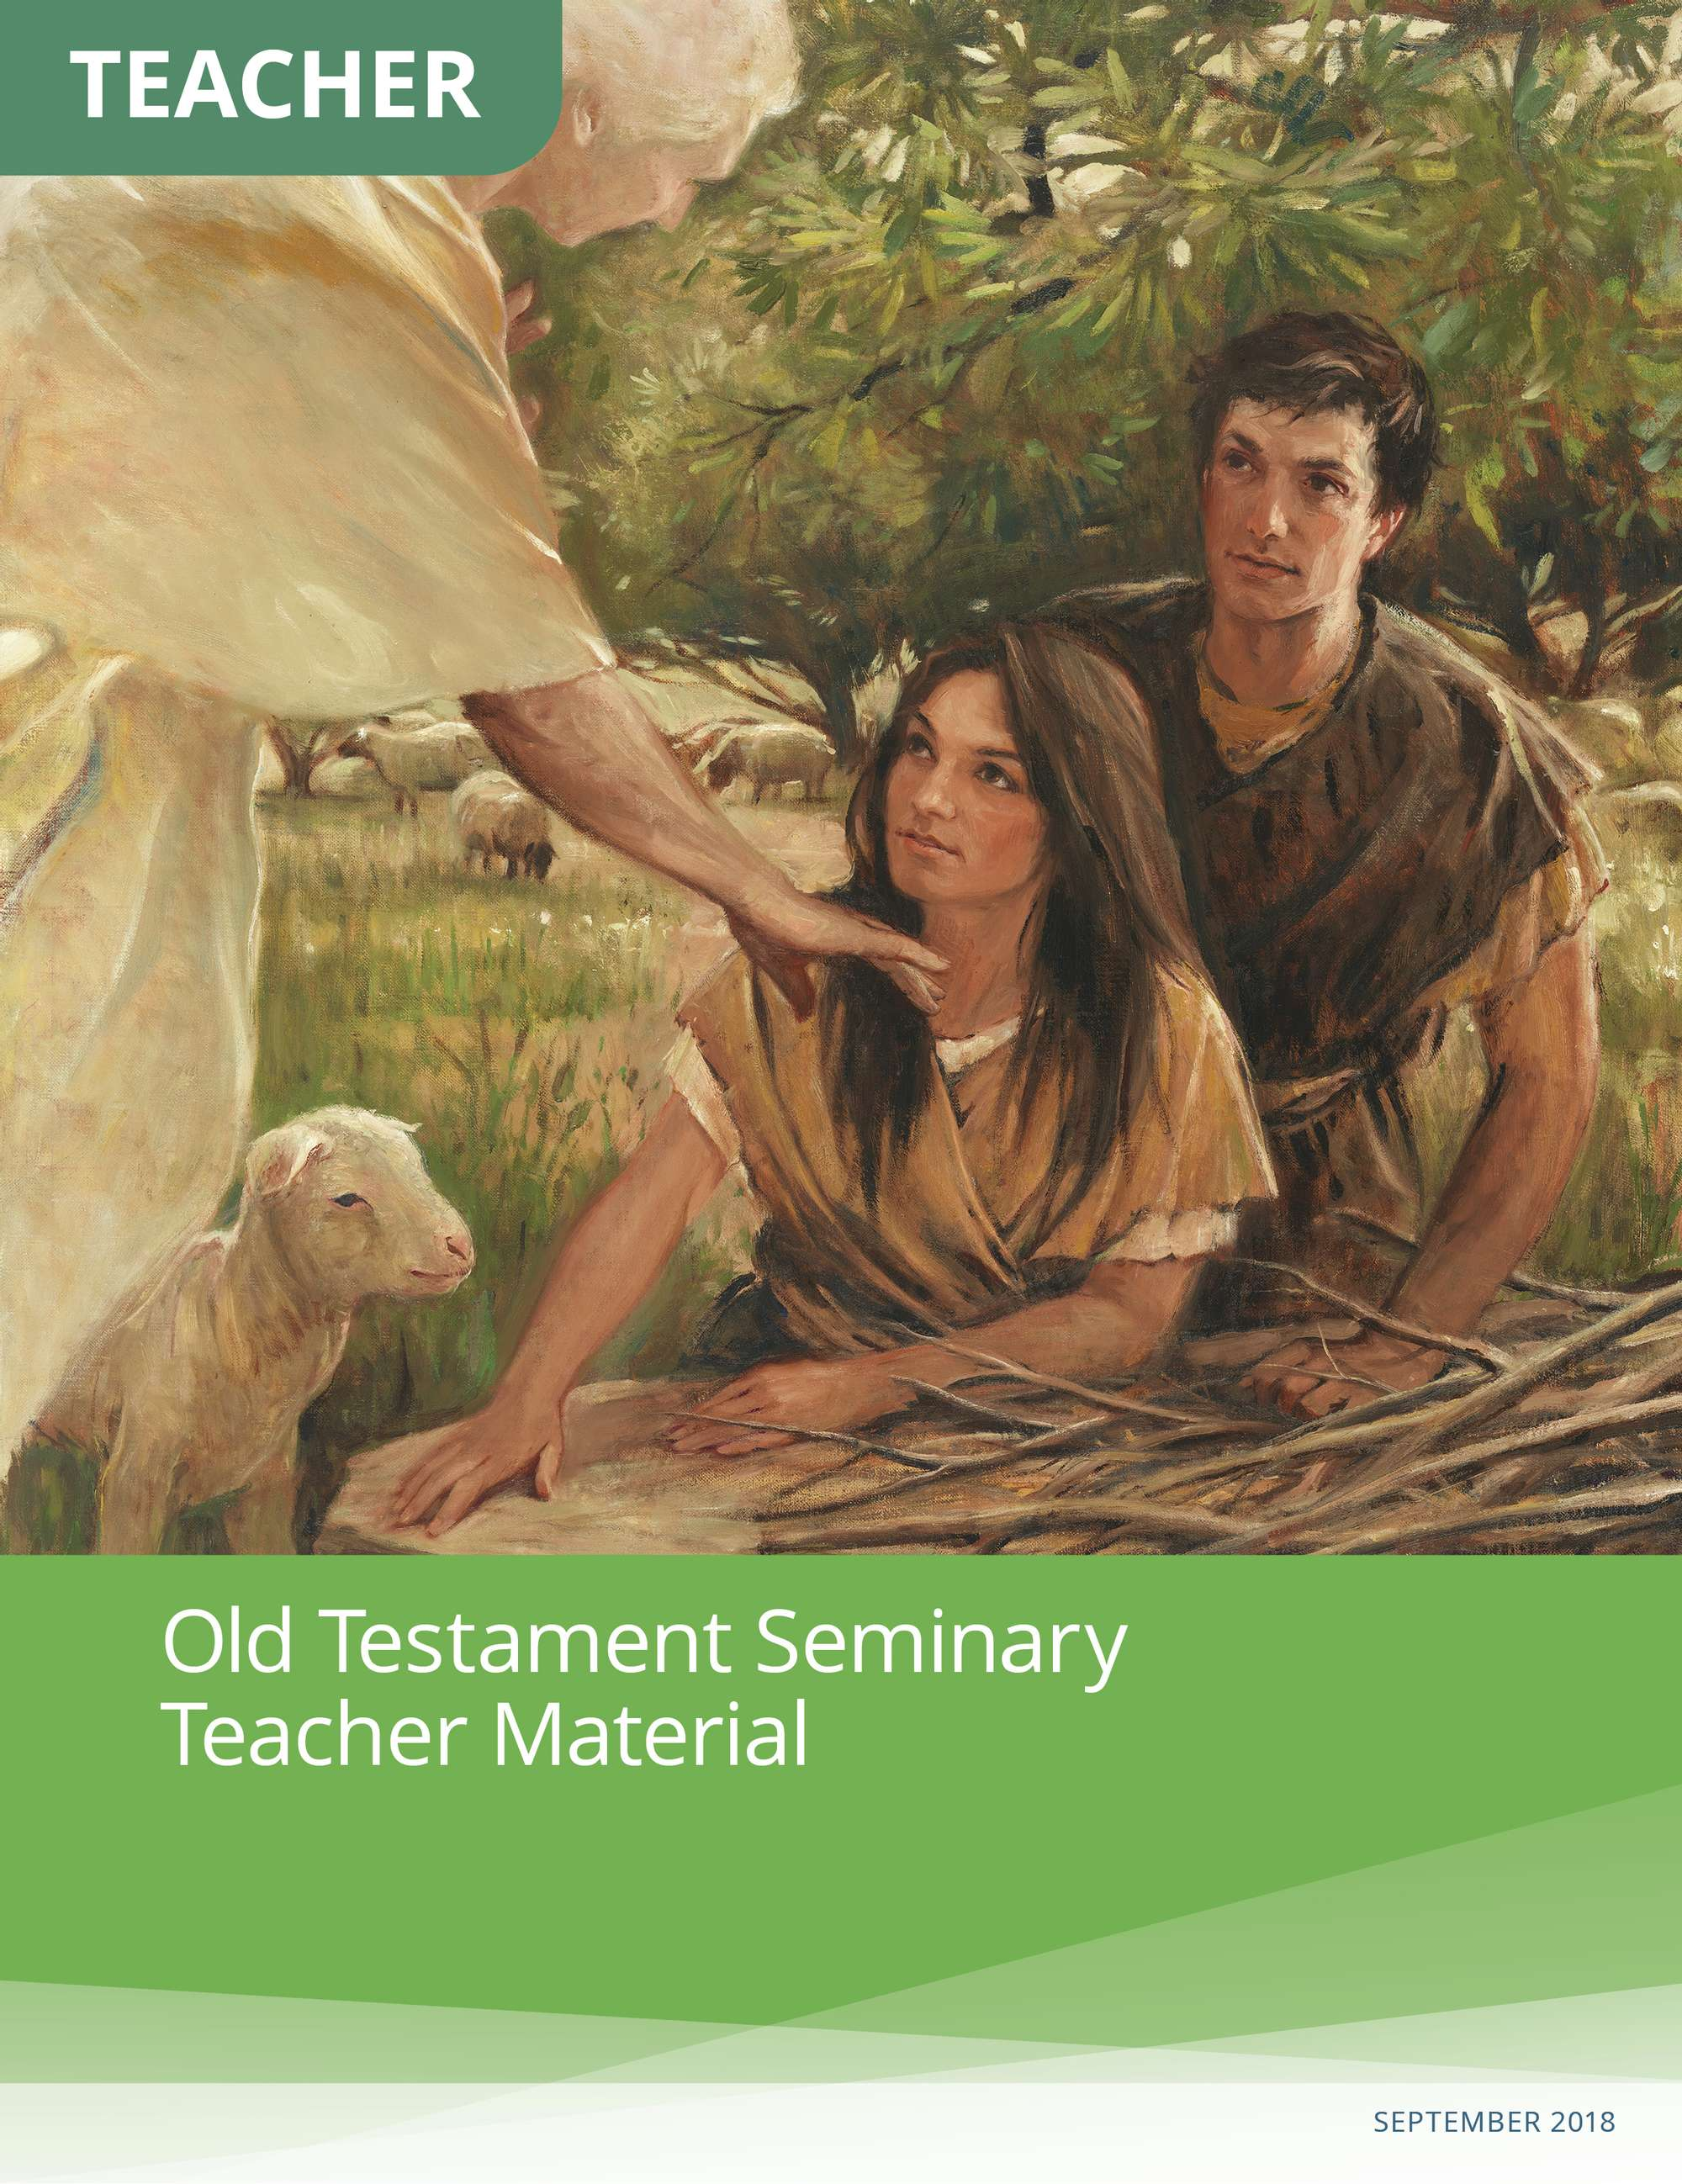 Old Testament Seminary Teacher Manual